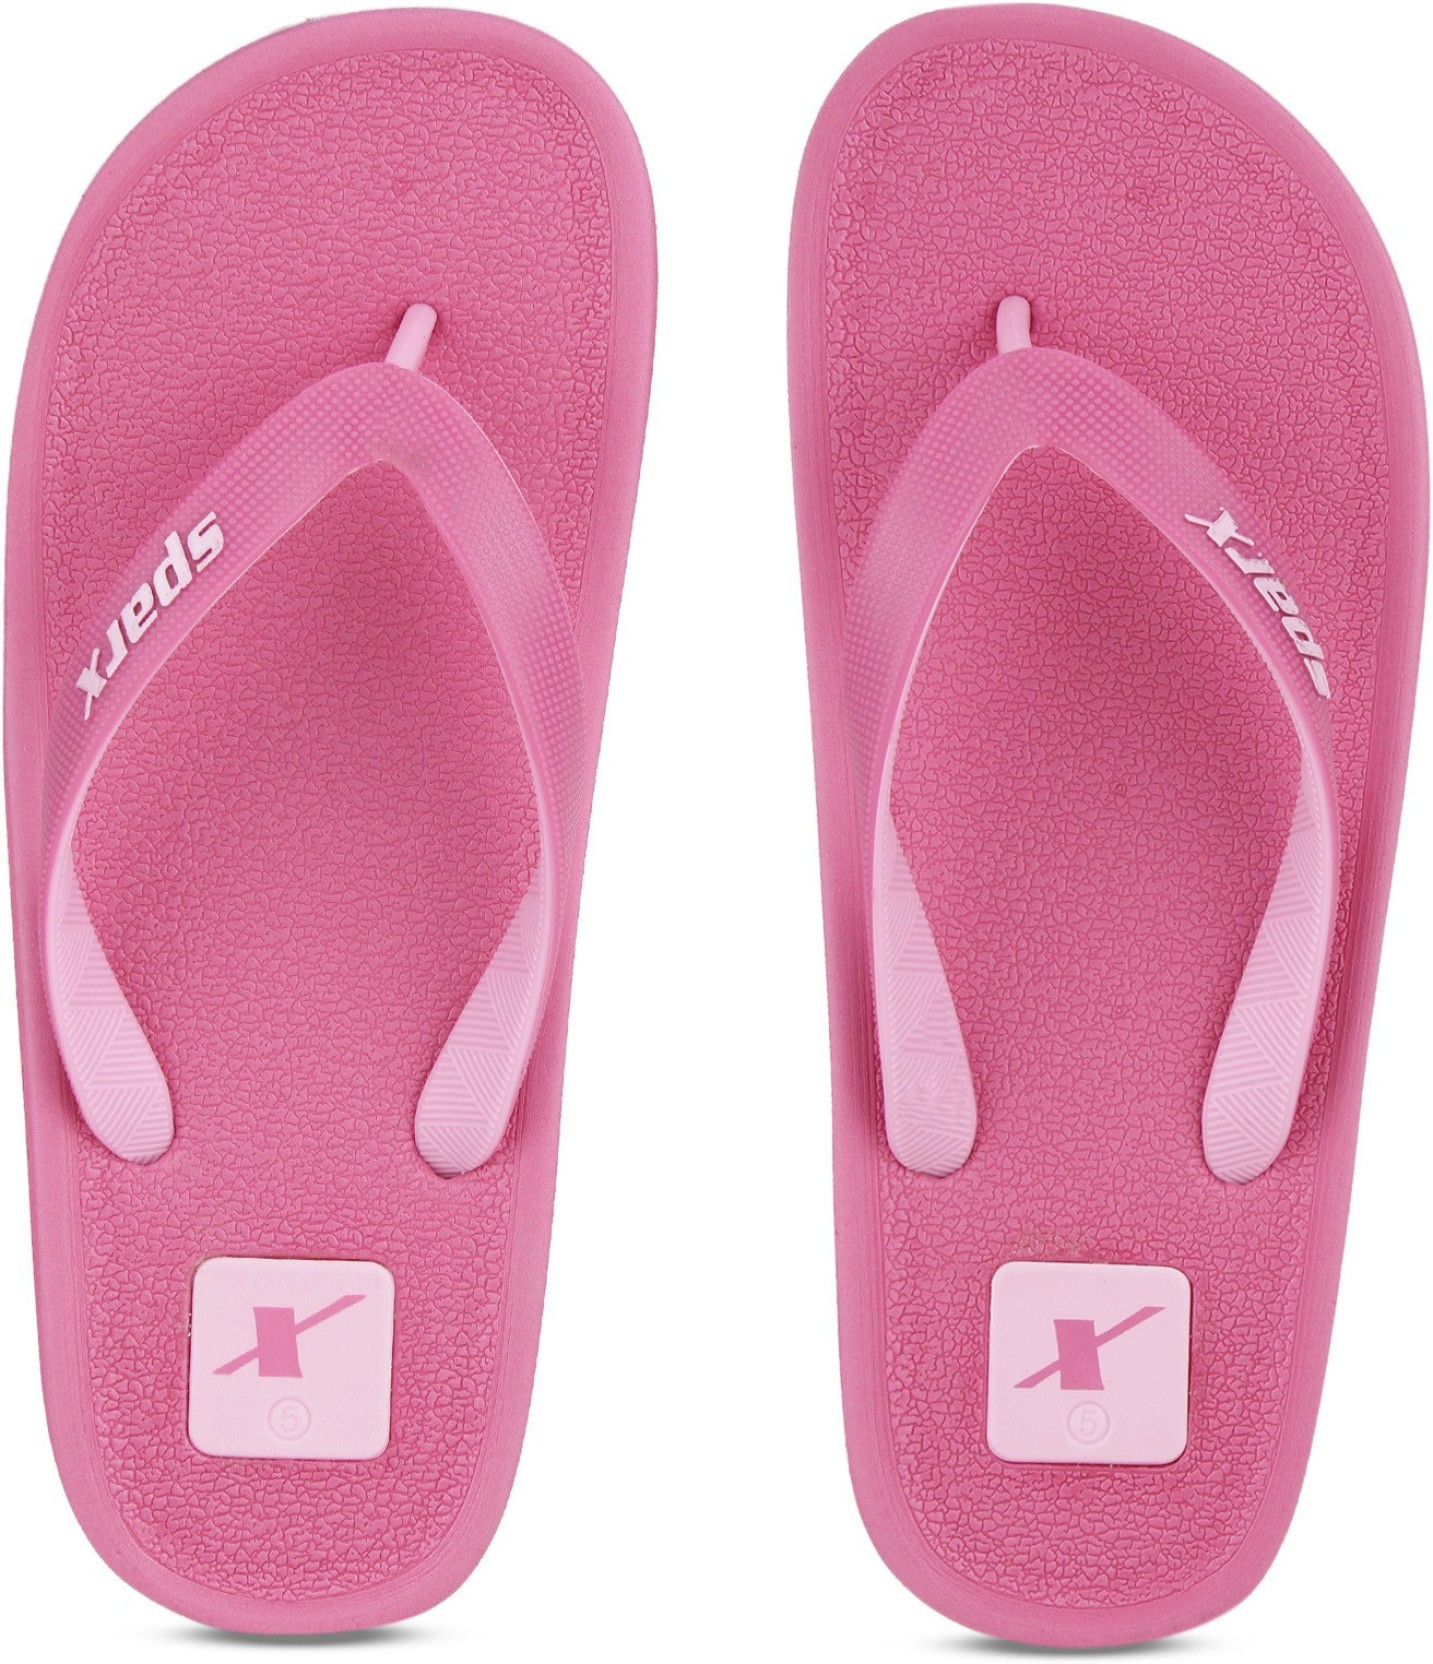 19fec1177f7f Sparx Women Slippers - Buy Pink Color Sparx Women Slippers Online at ...